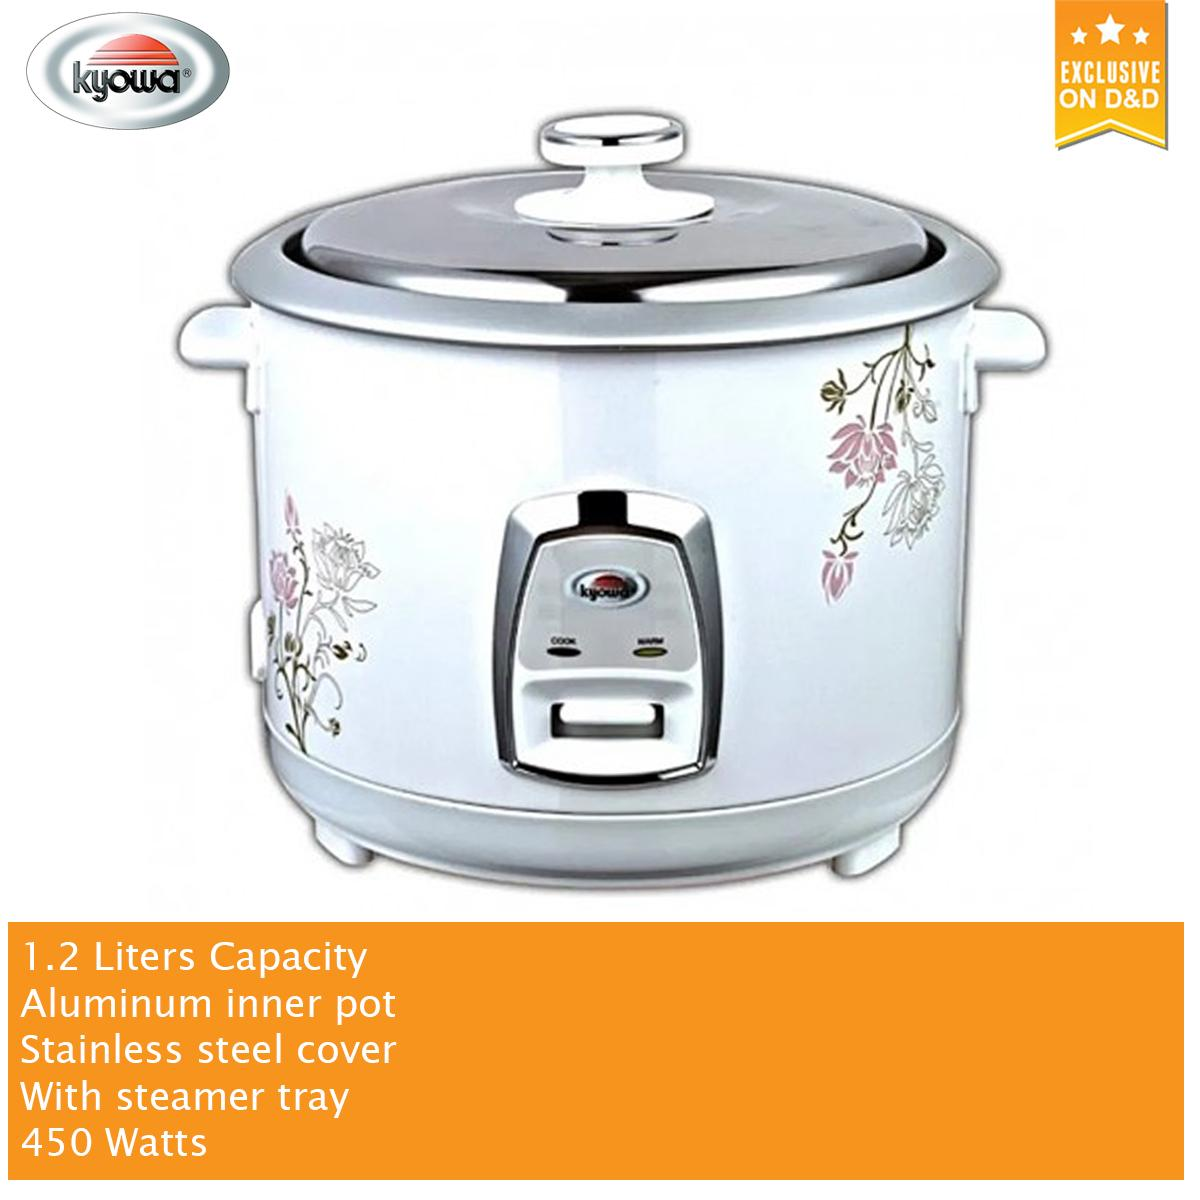 Kyowa Rice Cooker Schematic Diagram Worksheet And Wiring Electric Circuit Electricalequipmentcircuit Philippines Steamer For Sale Prices Rh Lazada Com Ph